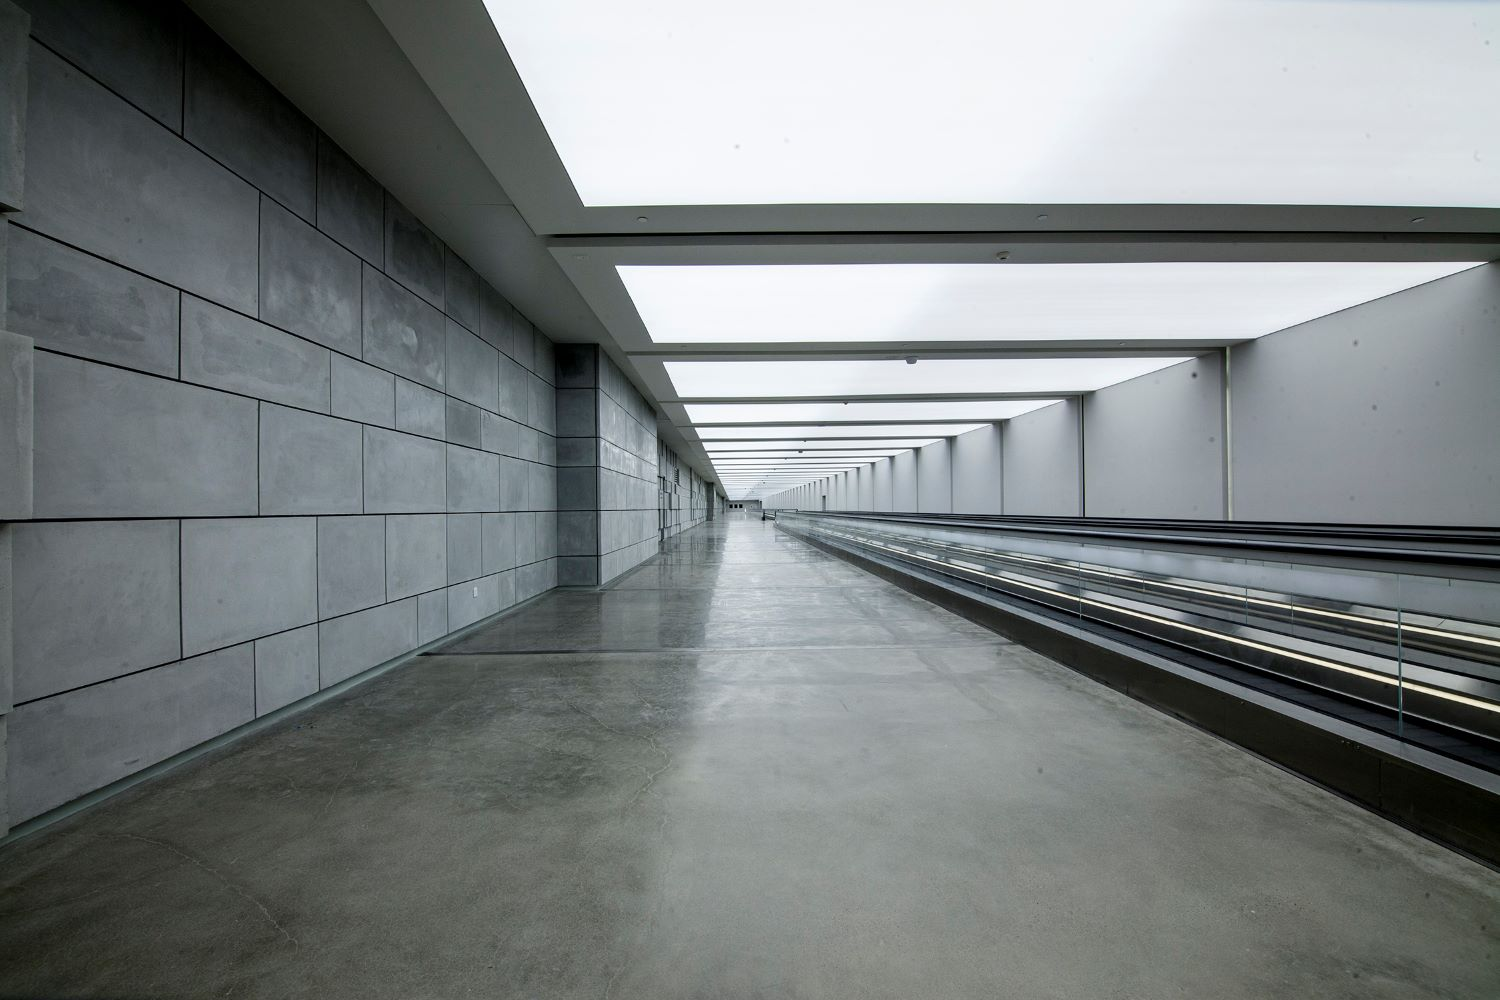 Kuwait Cultural Centre walkway with moving walkways